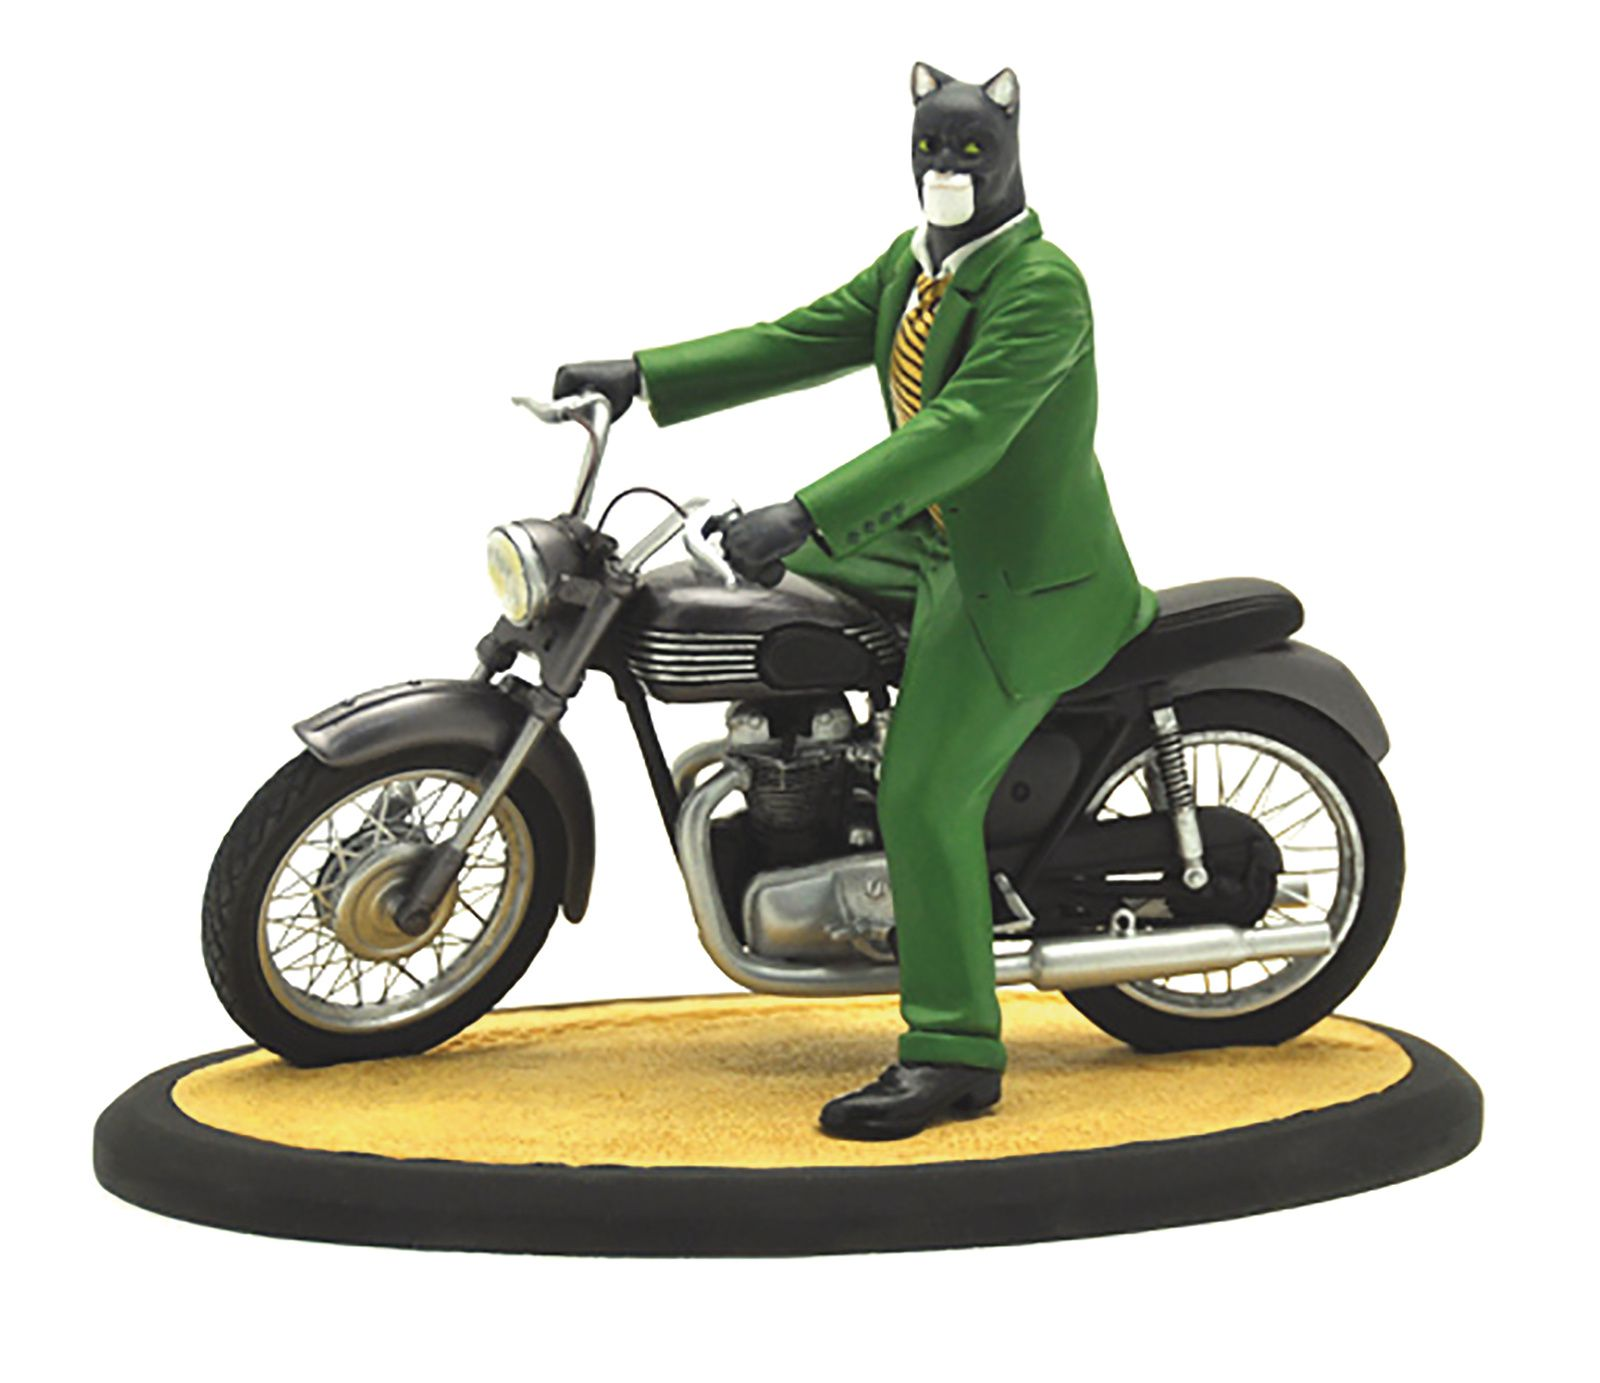 From Attakus.  Blacksad, created by Spanish authors Juan Diaz Canales (writer) and Juanjo Guarnido (illustrator), it is an anthropomorphic noir series, set in 1950s America, centered on eponymous trench-coated private investigator, John Blacksad, a lithe, witty and cynical cat. Featured here on his motorcycle, Triumph, this stunning diorama features parts made from porcelain resin and a motorcycle with real metal parts!  In Shops: Jul 25, 2018 SRP: $399.99